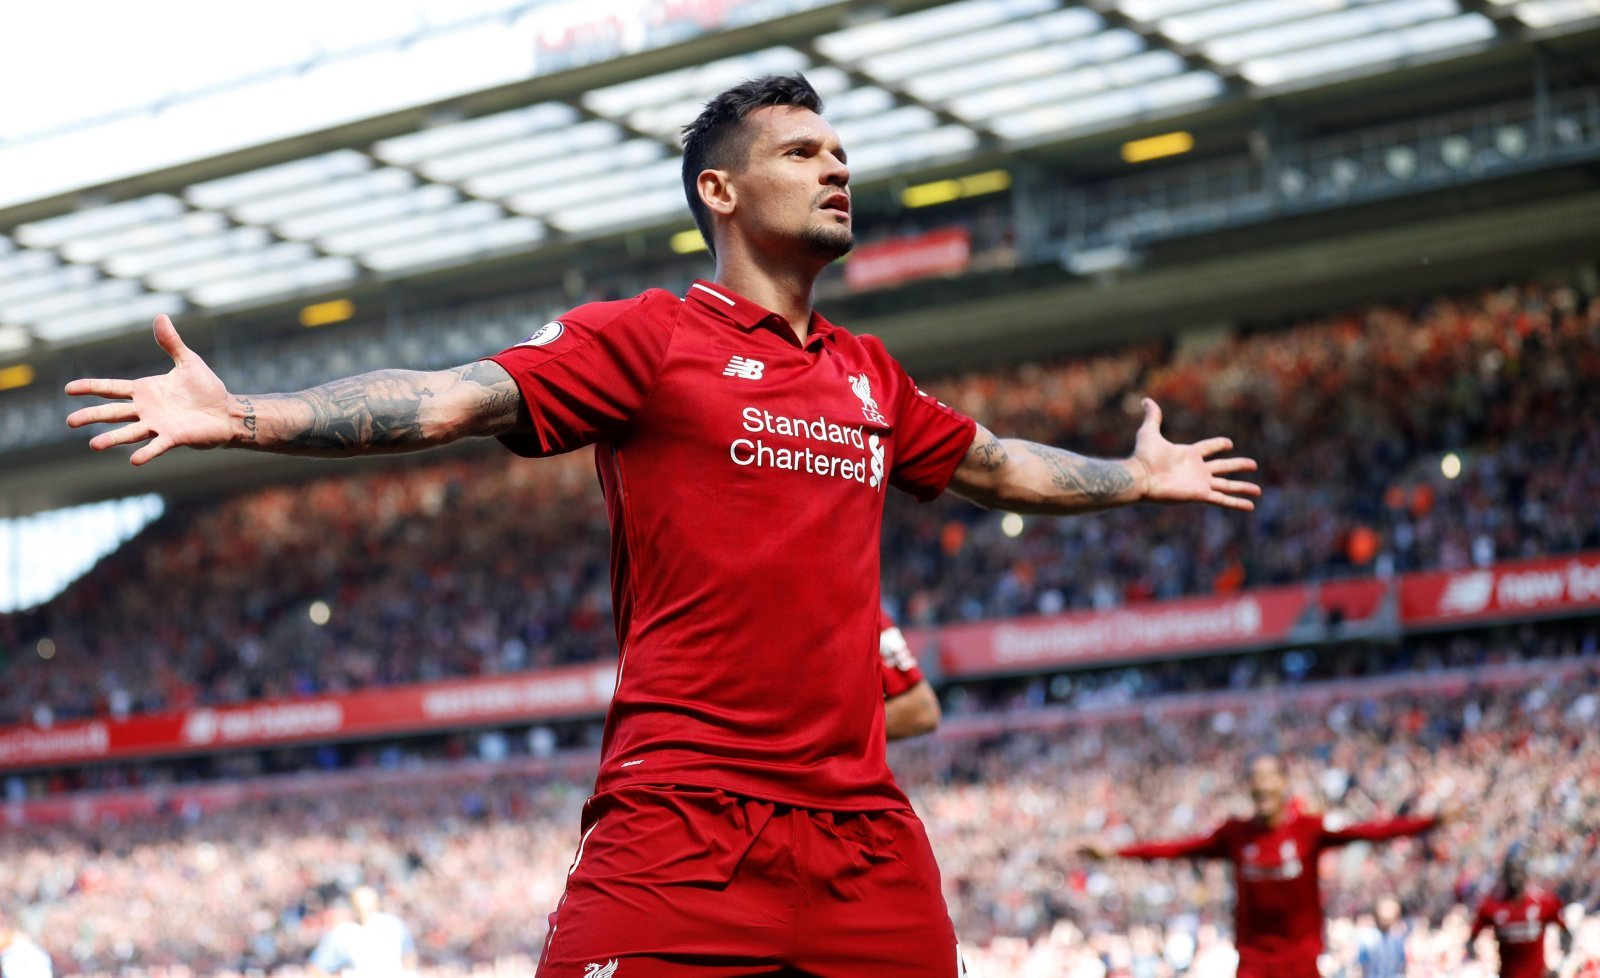 Dejan Lovren impressed plenty of fans with his return to action